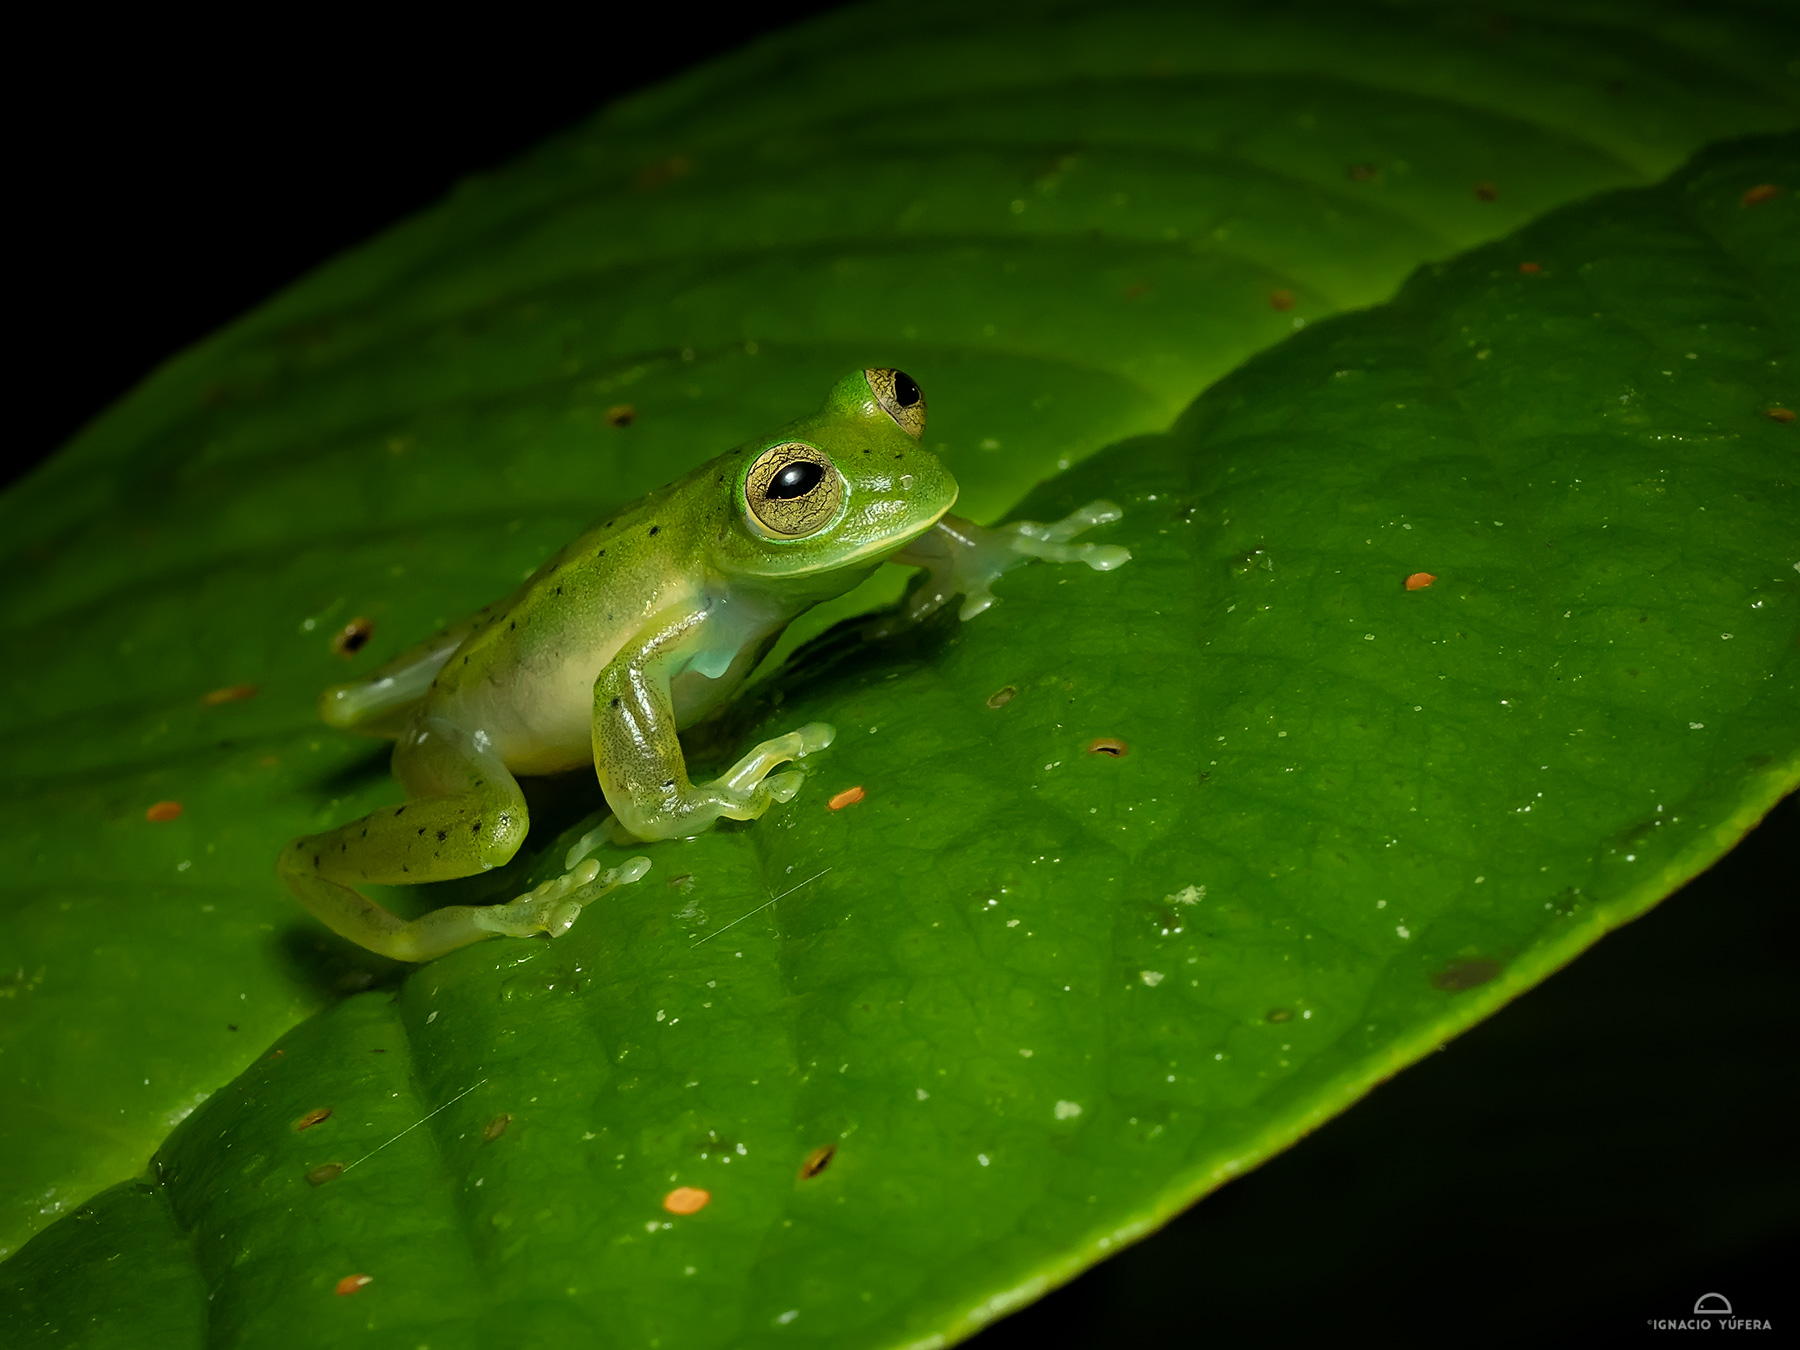 Emerald Glass Frog (Espadarana prosoblepon), Fortuna, Panama, June